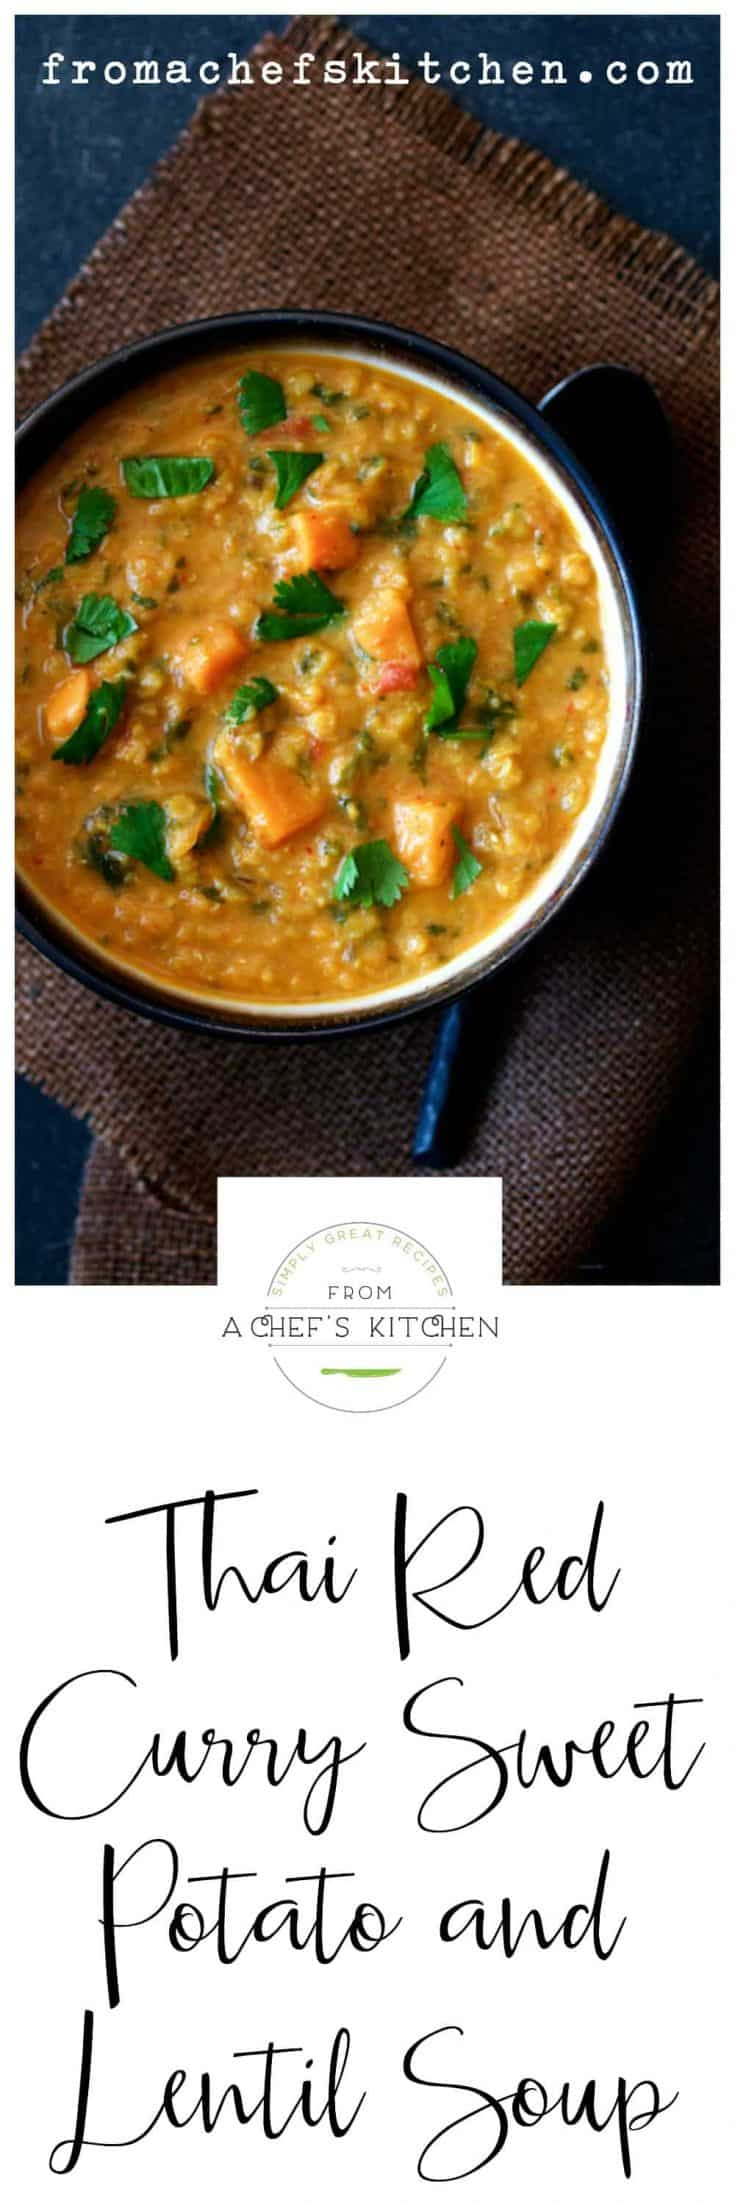 Thai Red Curry Sweet Potato and Lentil Soup delivers delicious Thai-inspired comfort and warmth in a hurry in a light yet satisfying soup! #vegansoup #thairedcurry #thaicurry #sweetpotato #lentil #lentilsoup